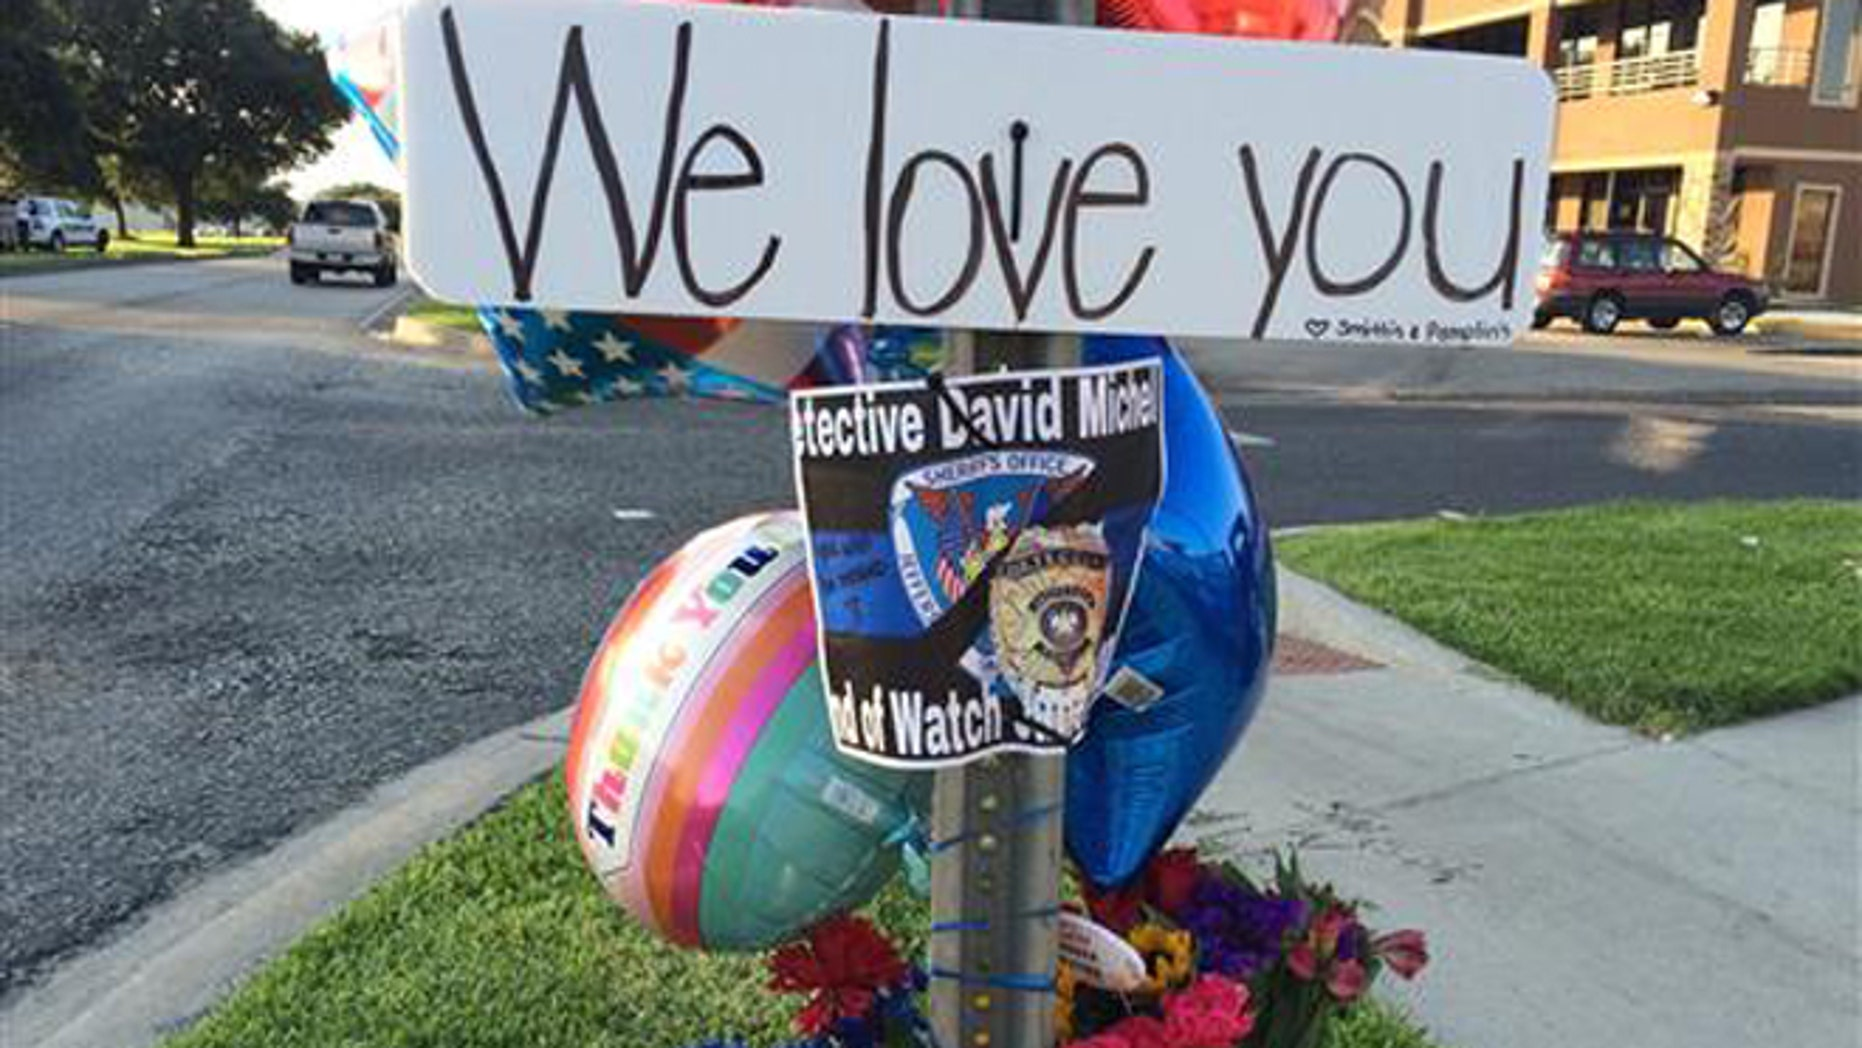 June 22, 2016: Flowers and other items are laid at a memorial where Jefferson Parish Sheriff's Deputy David F. Michel Jr. was shot and killed in Harvey, La.